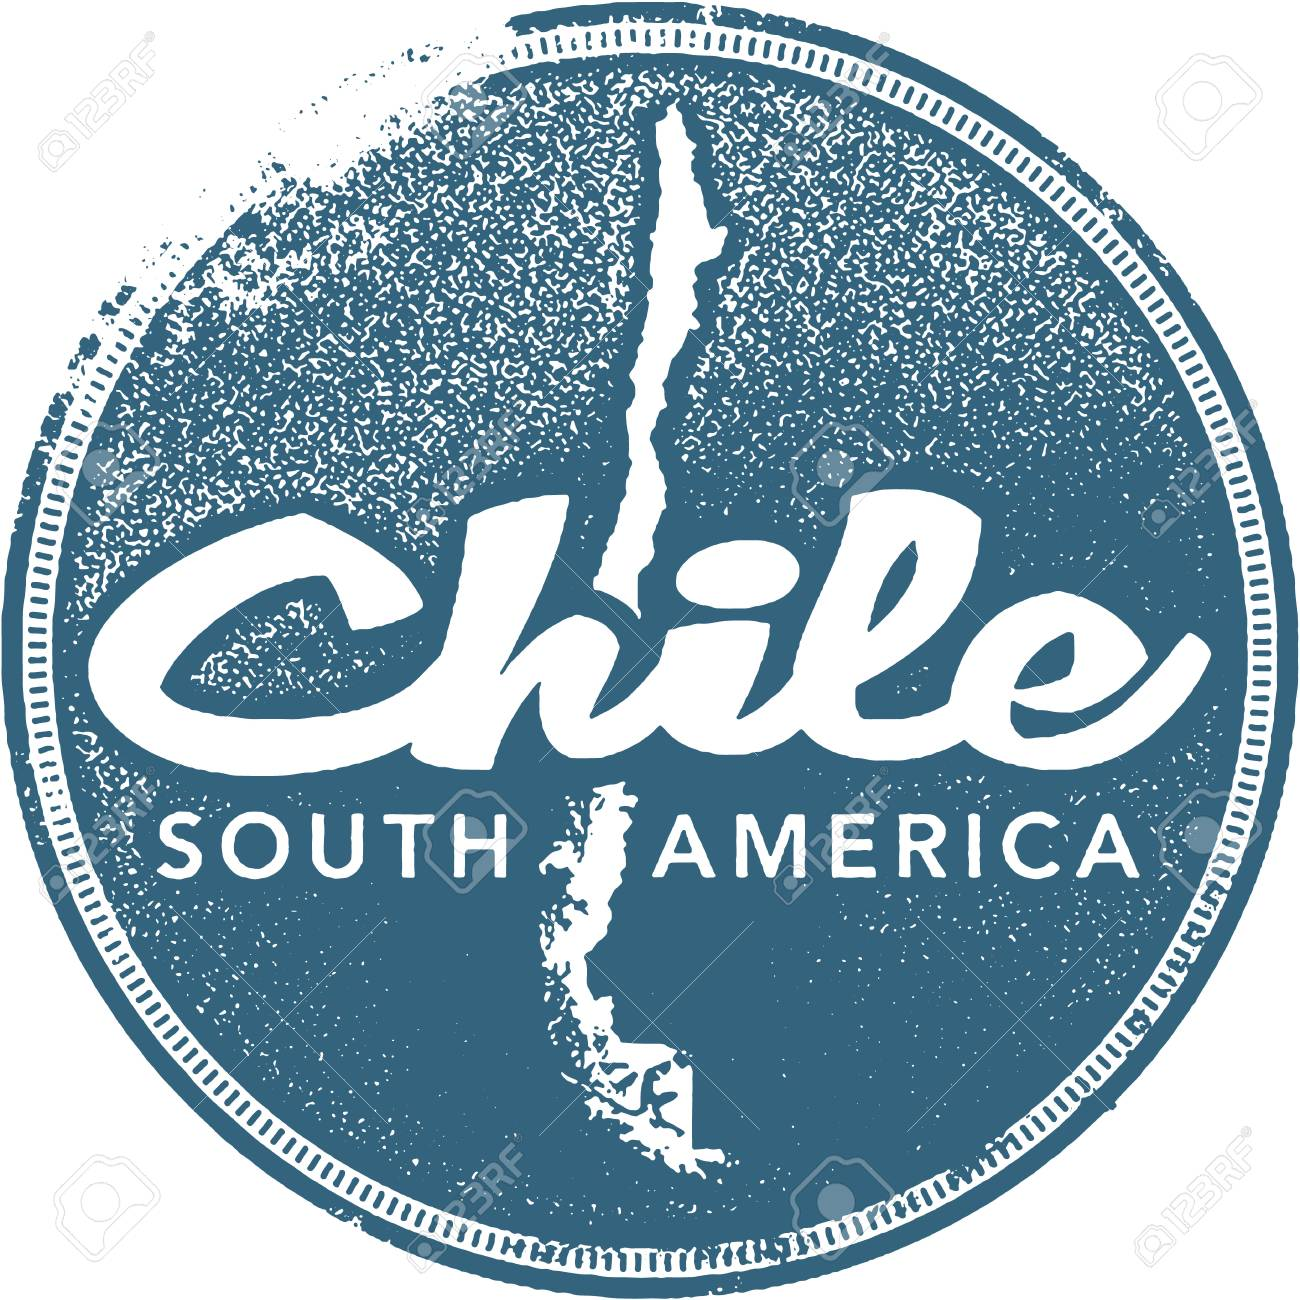 Chile South America Travel Stamp Stock Vector